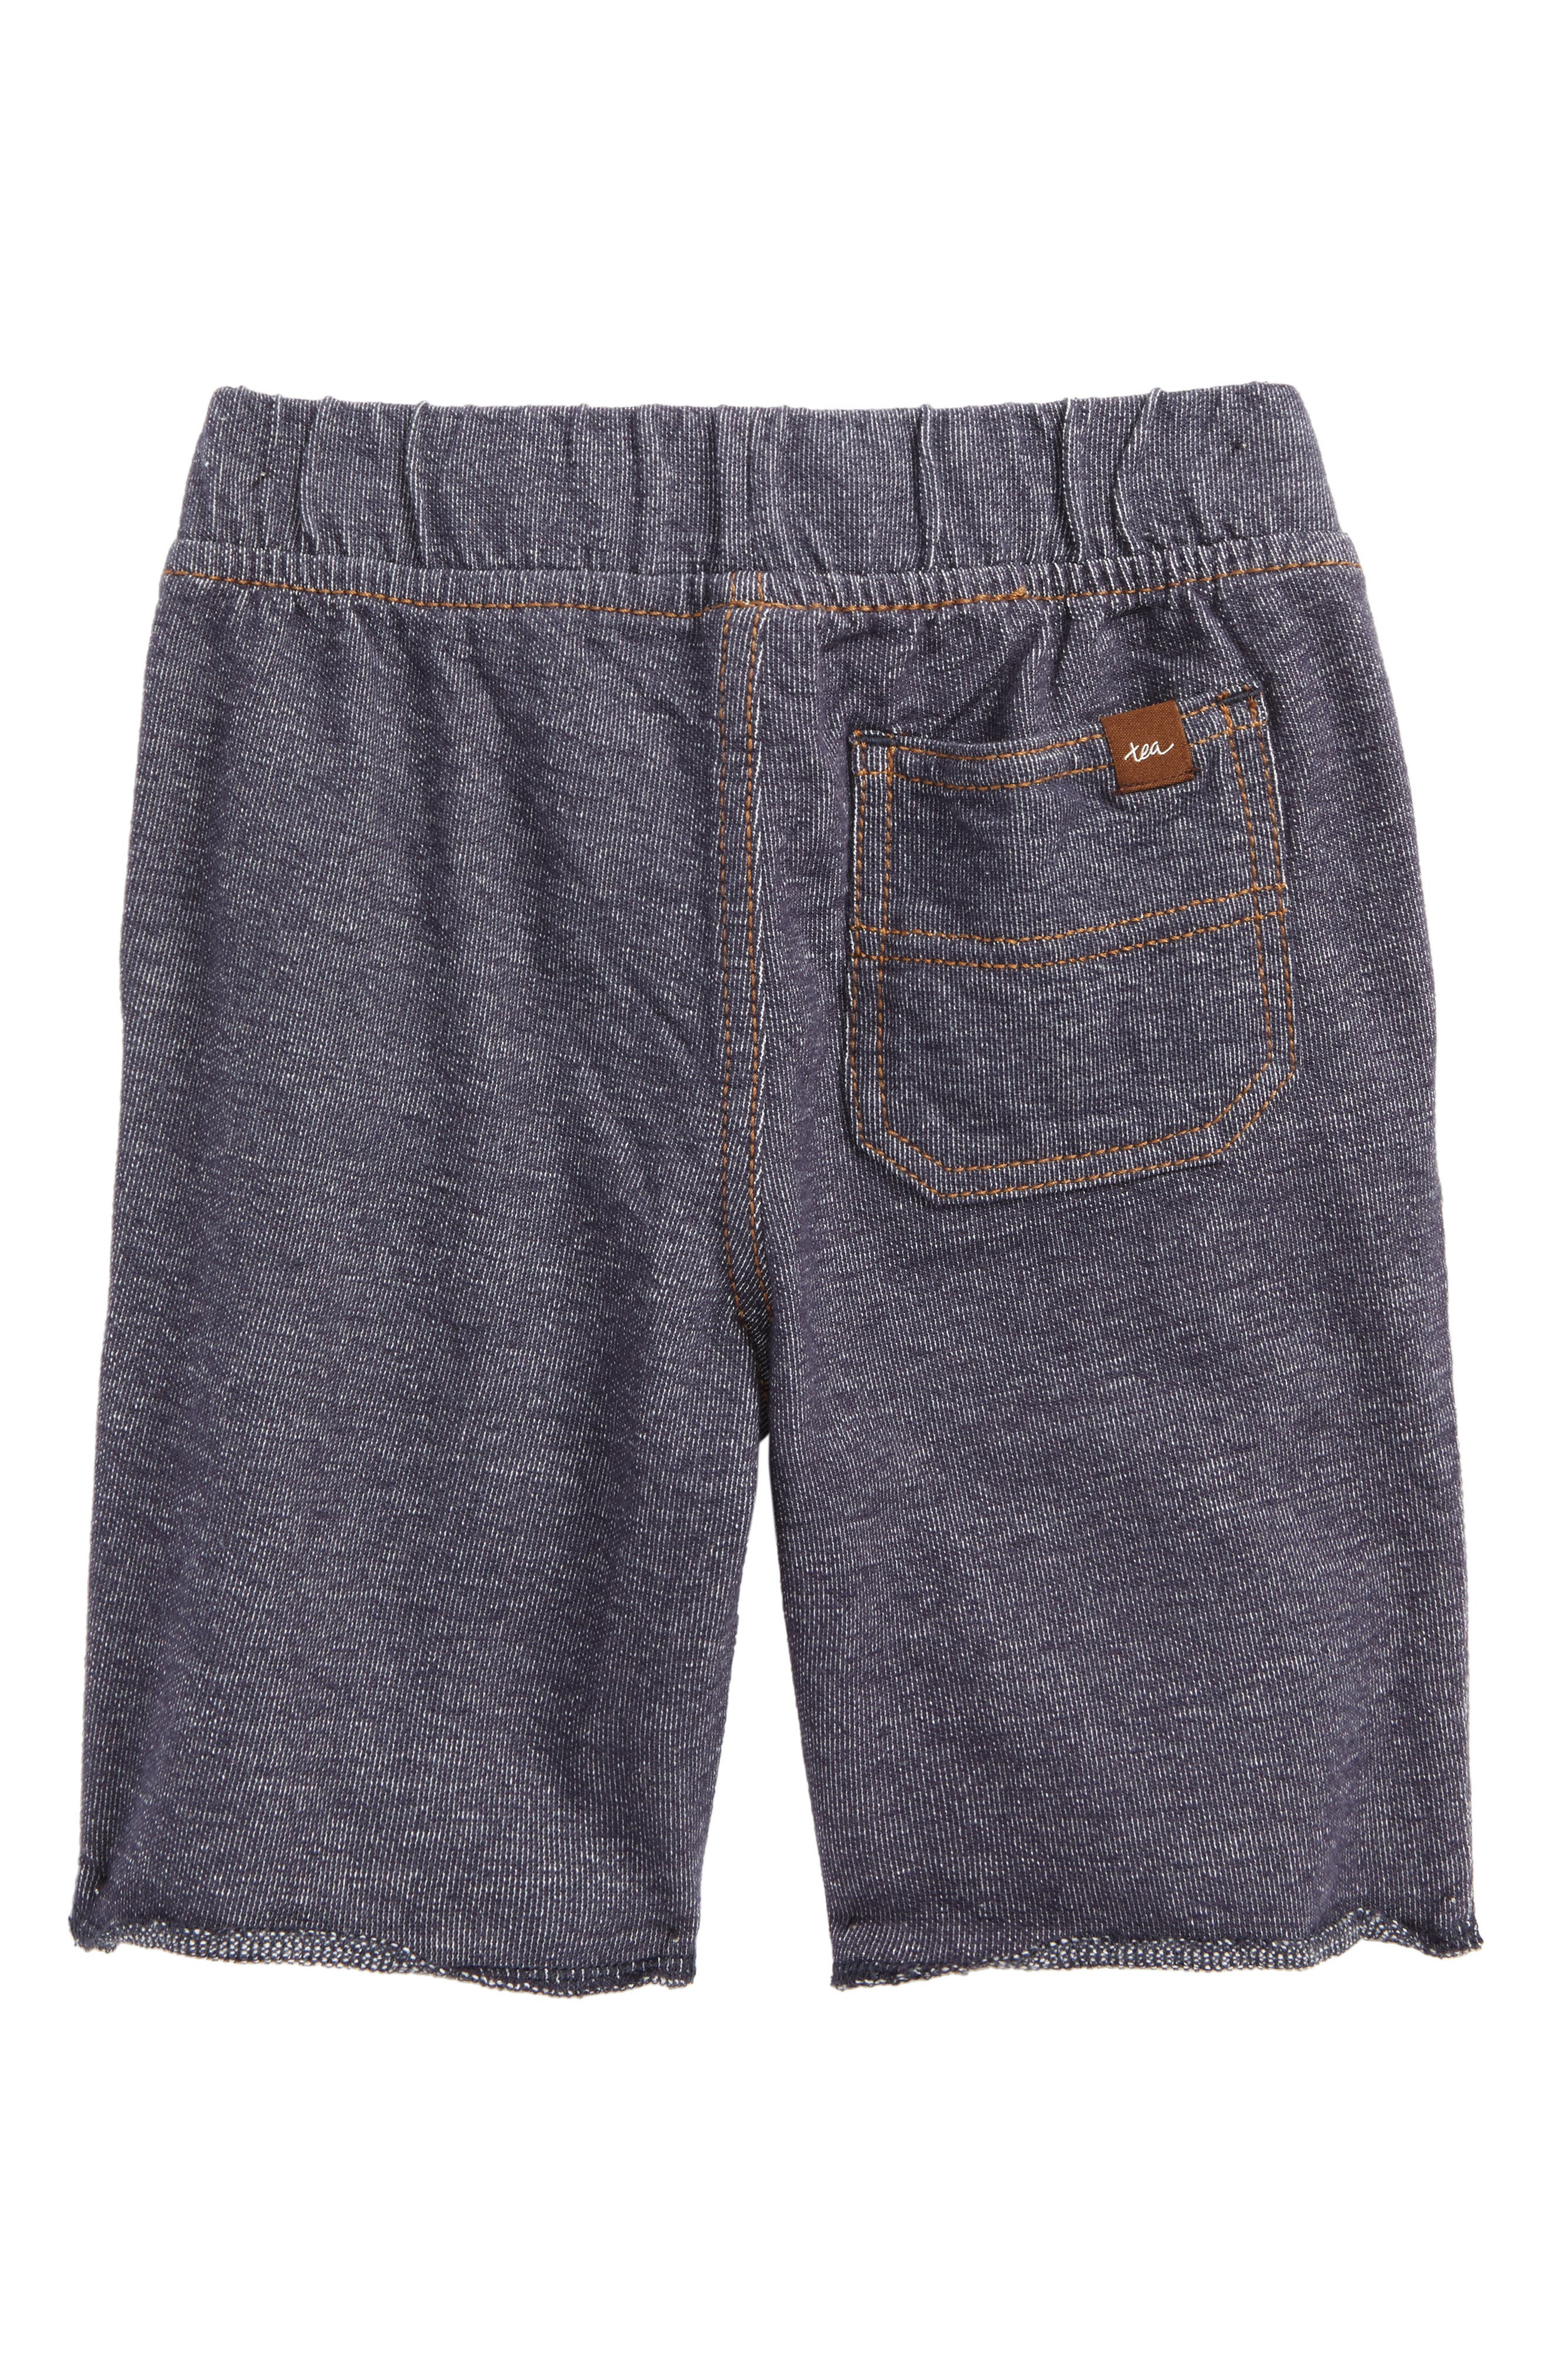 Alternate Image 2  - Tea Collection Shorts (Baby Boys)